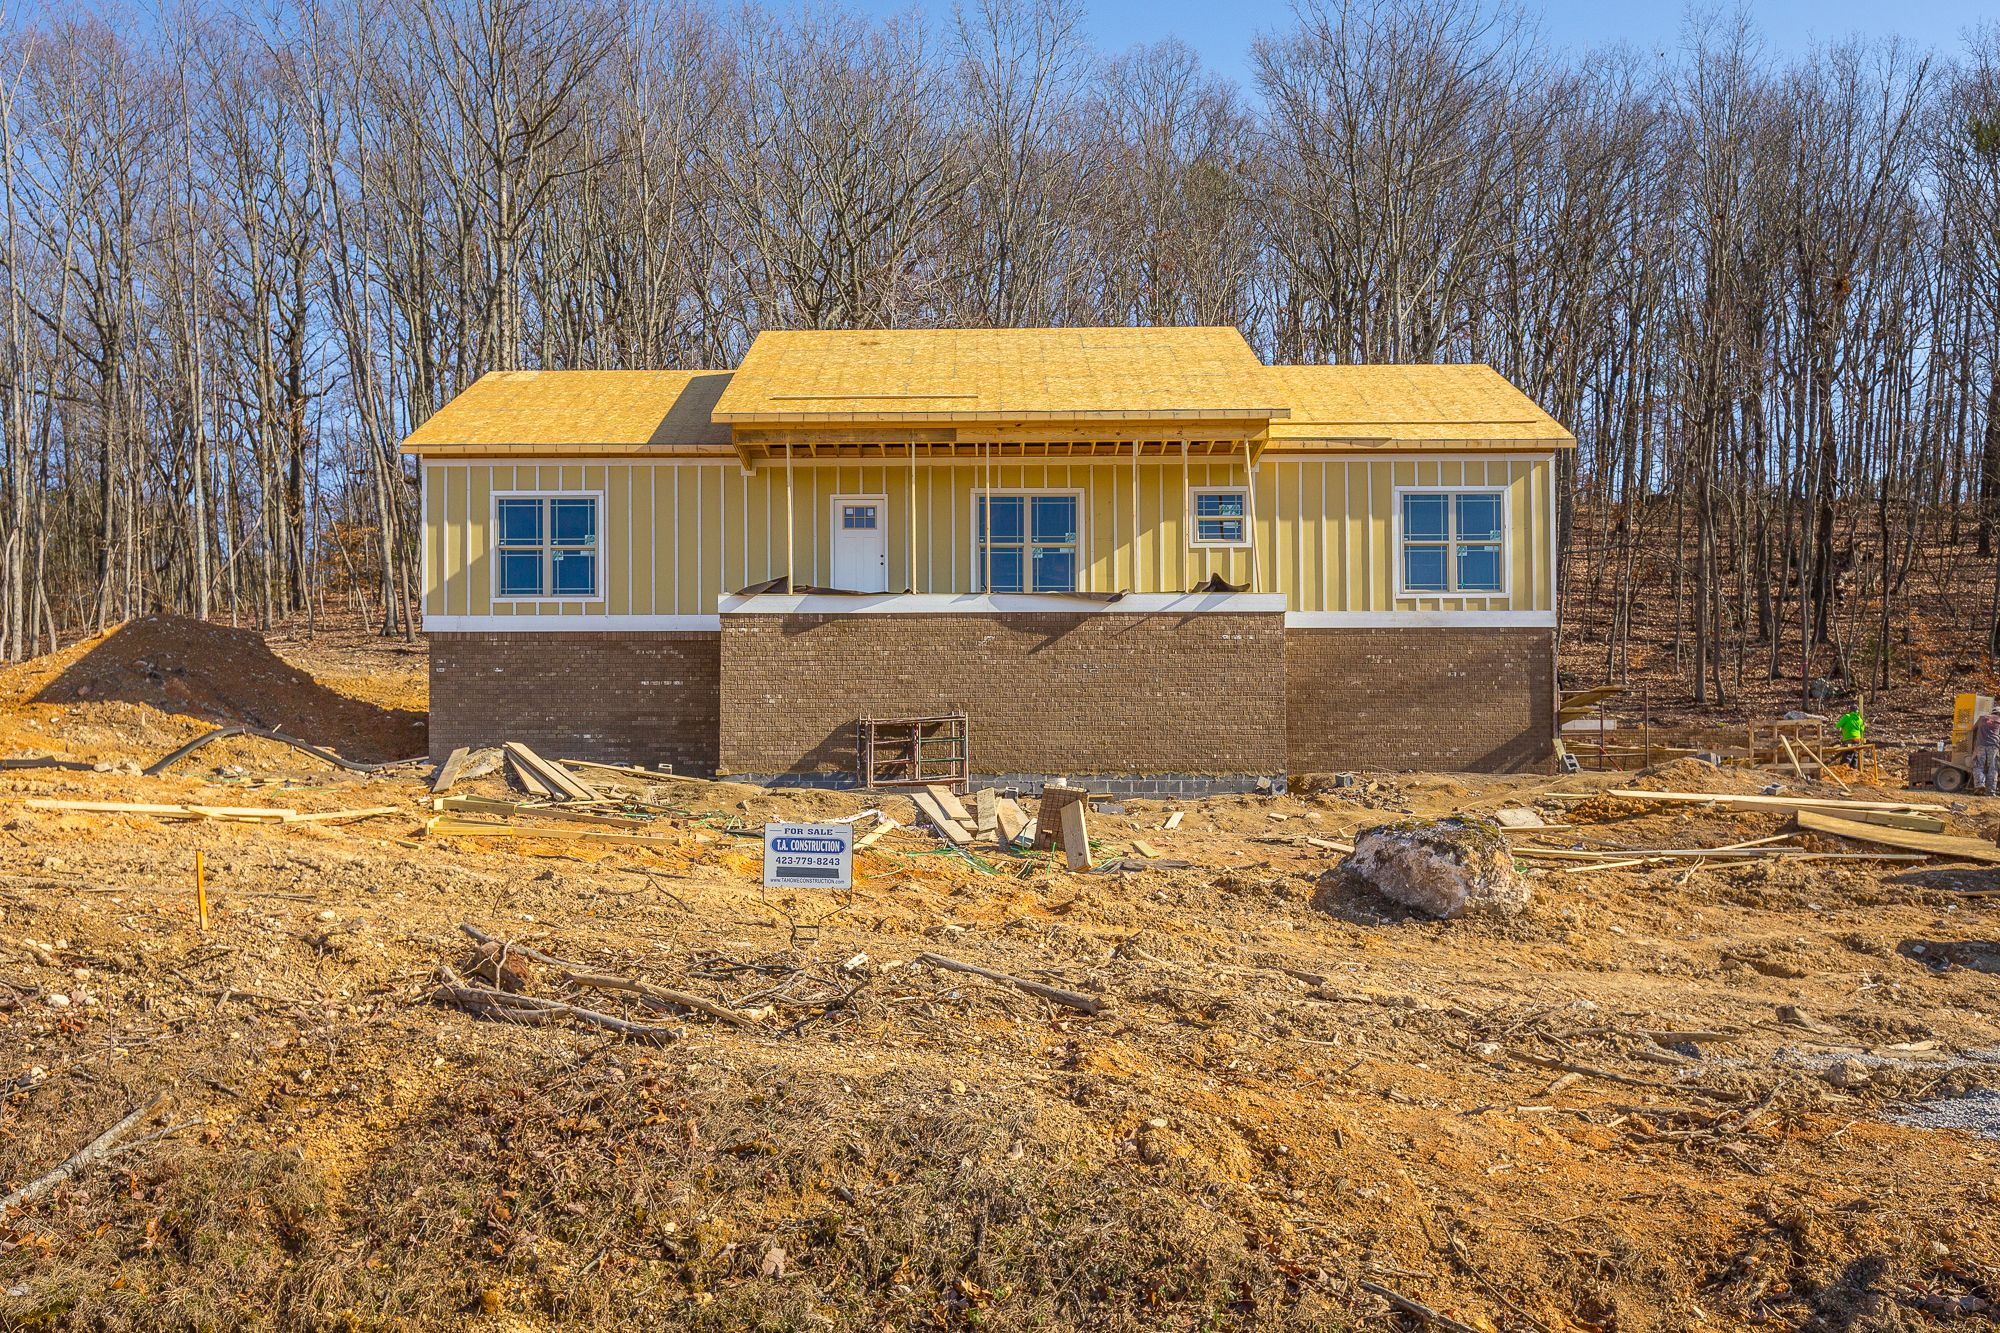 Sold. 3716 Alabama Rd. Apison. New construction, one-level home with a full basement and situated on a 1.3 +/- acre lot. 3 BR, 2 BA, open living concept, covered front and back porches. MLS# 1258604. $269,900.  The Paula McDaniel Group  Cell: 423-355-0311 * Office: 423-362-8333   Real Estate Partners Chattanooga, LLC. Equal Housing Opportunity. Licensed in TN and GA.